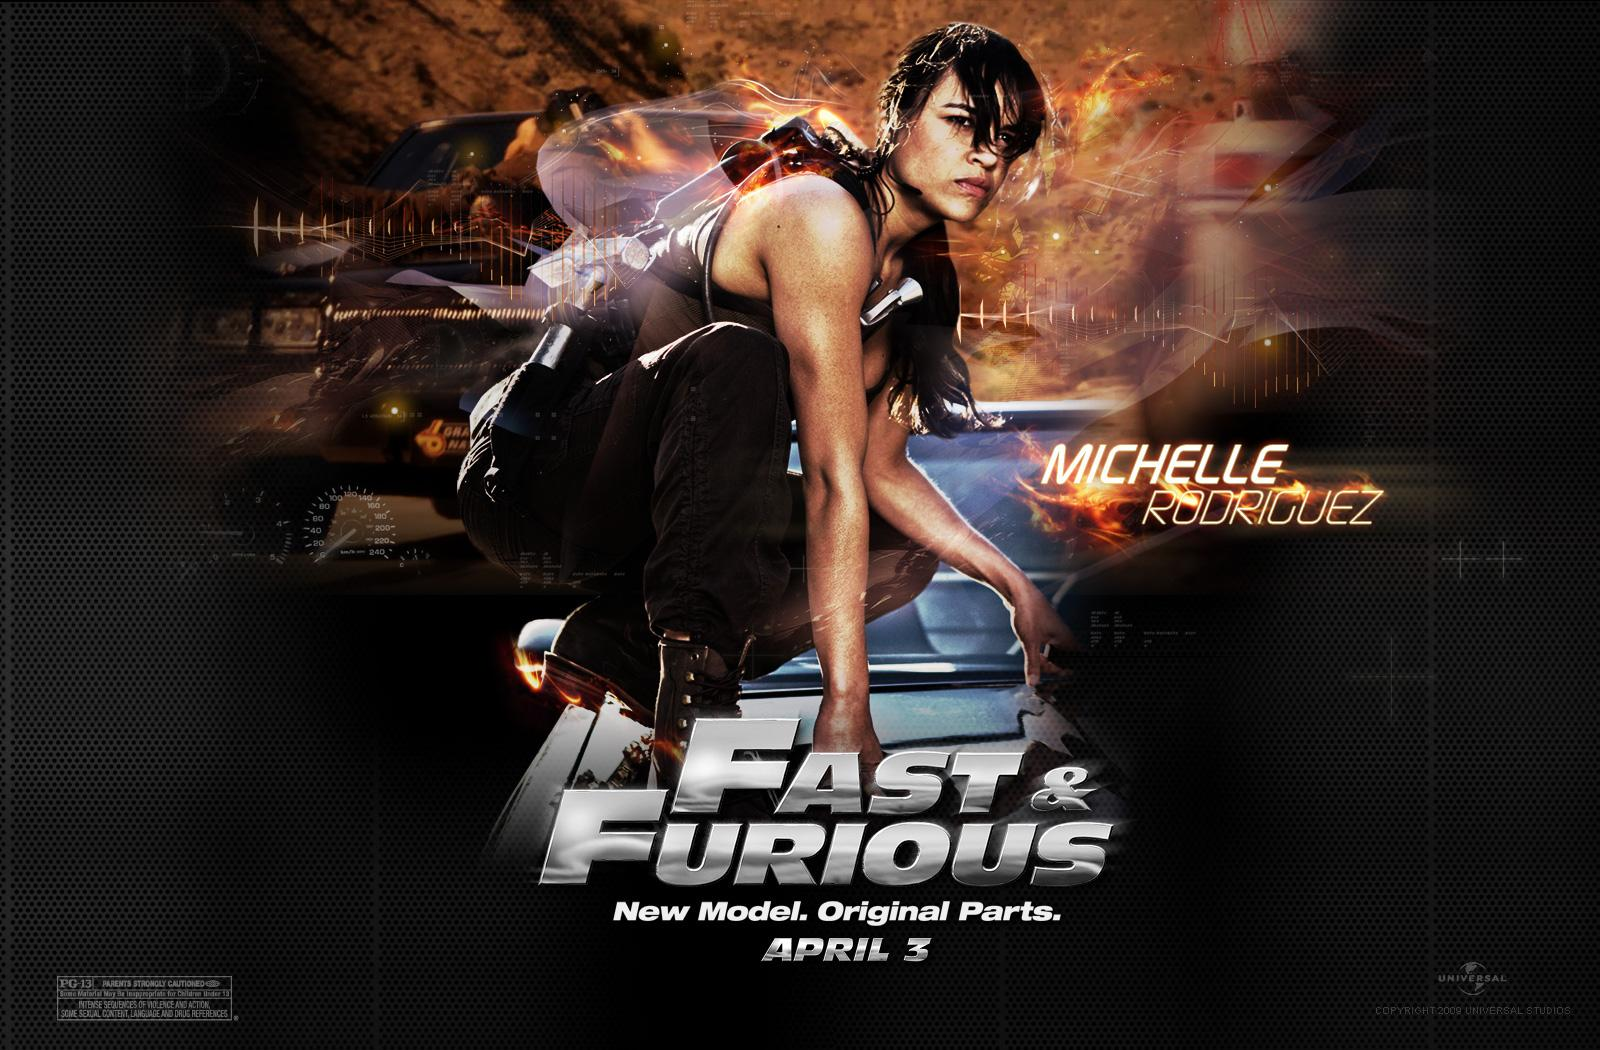 http://4.bp.blogspot.com/_-x-5Smo6aMo/TTr4pOdt4GI/AAAAAAAABfI/ikpYlJZpNXo/s1600/fast-and-furious-4-michelle-rodriguez.jpg